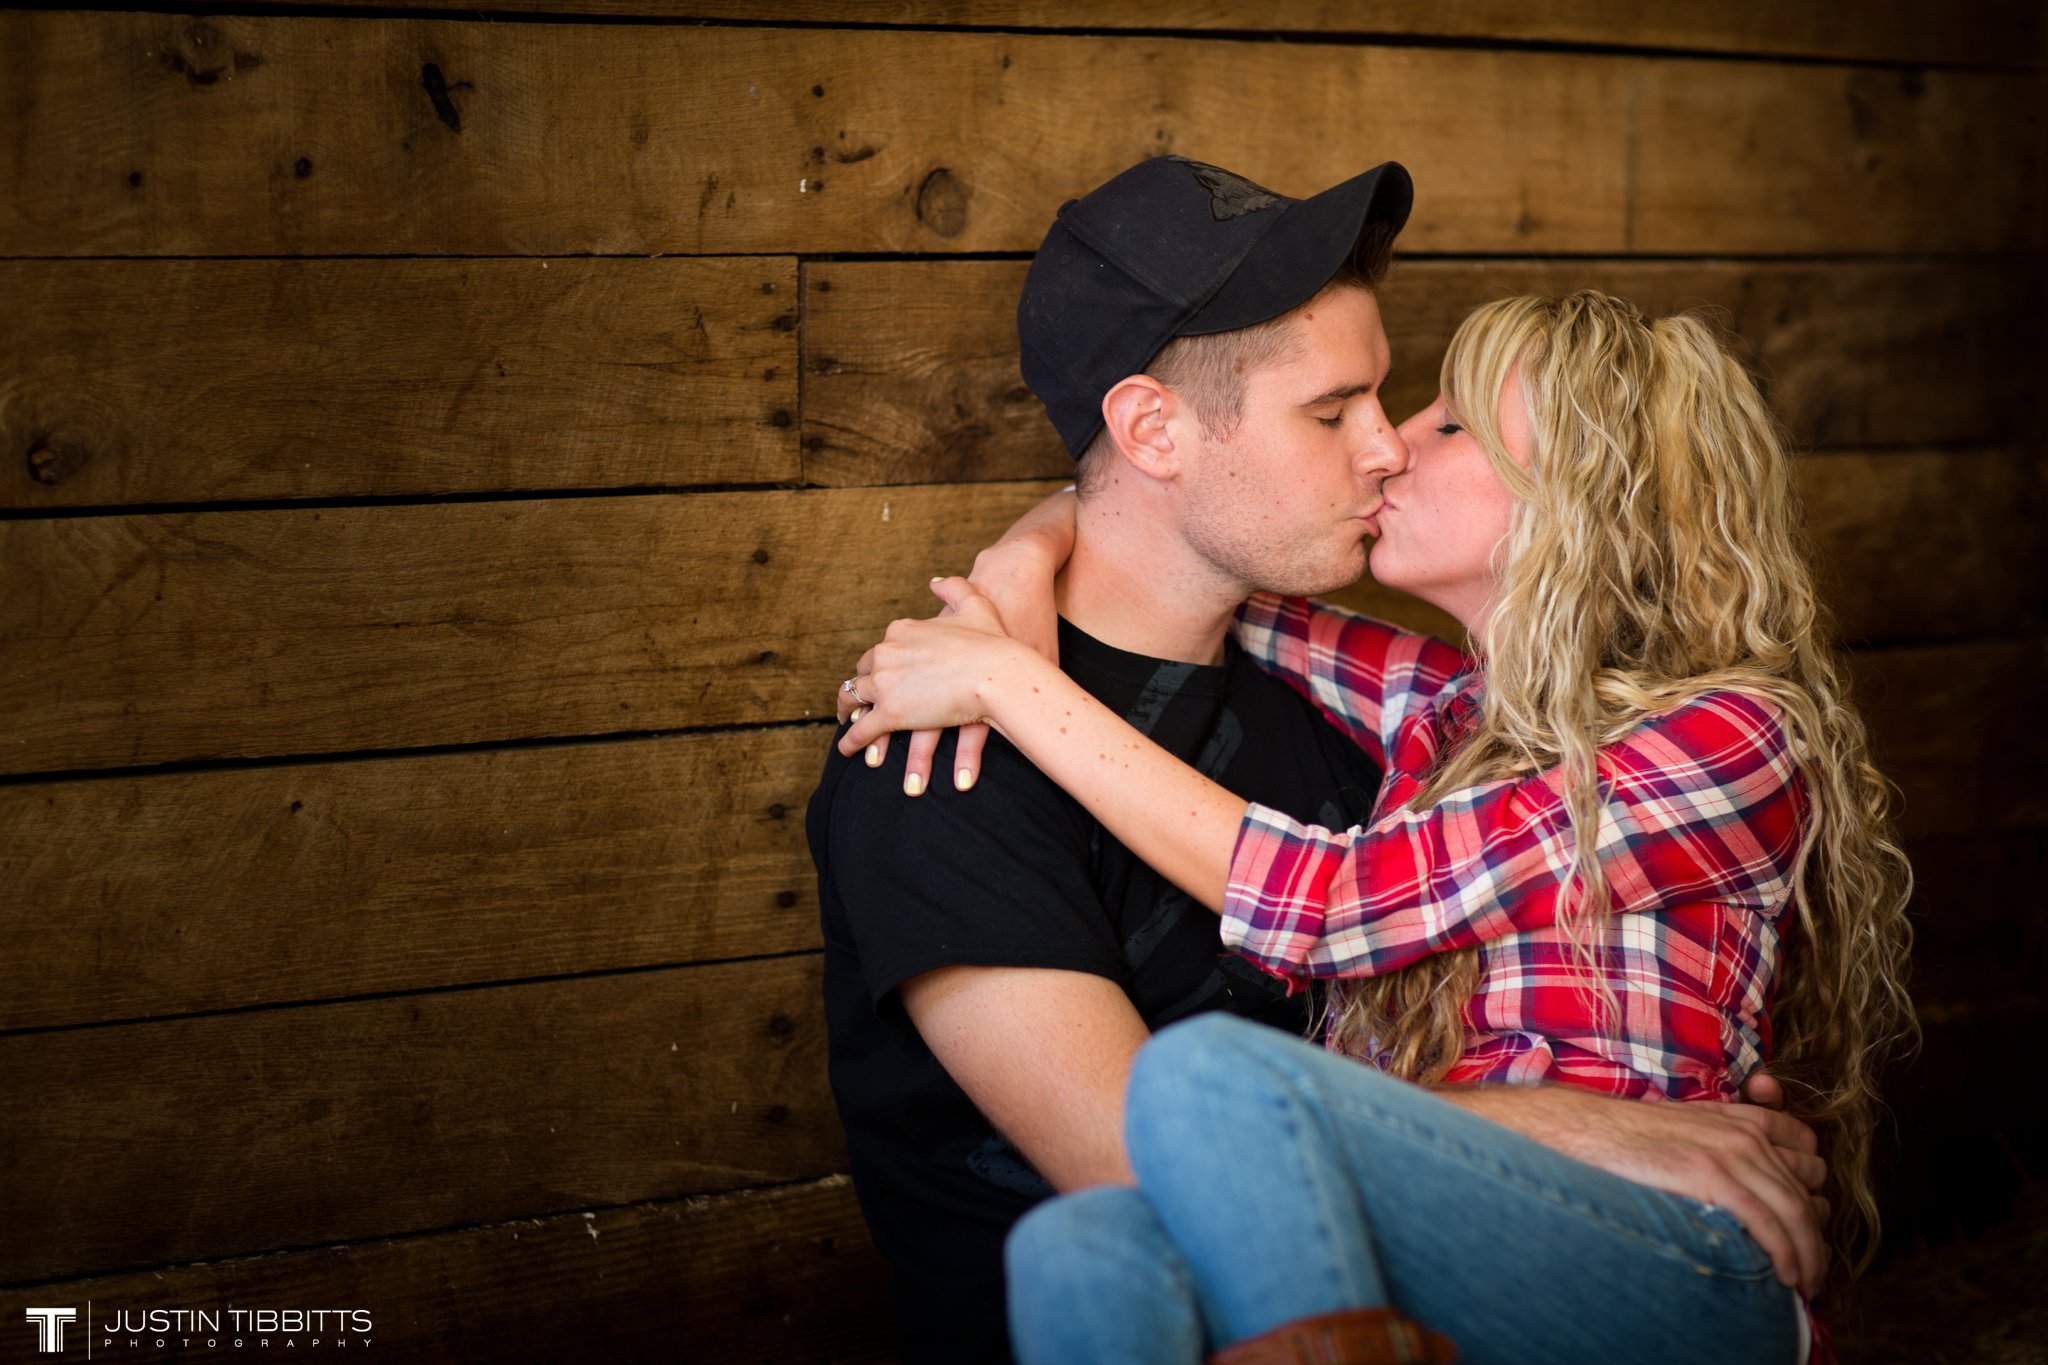 Justin Tibbitts Photography Tim and Taylor's Chatham New York Engagement Photo Shoot Albany Wedding Photography_0006